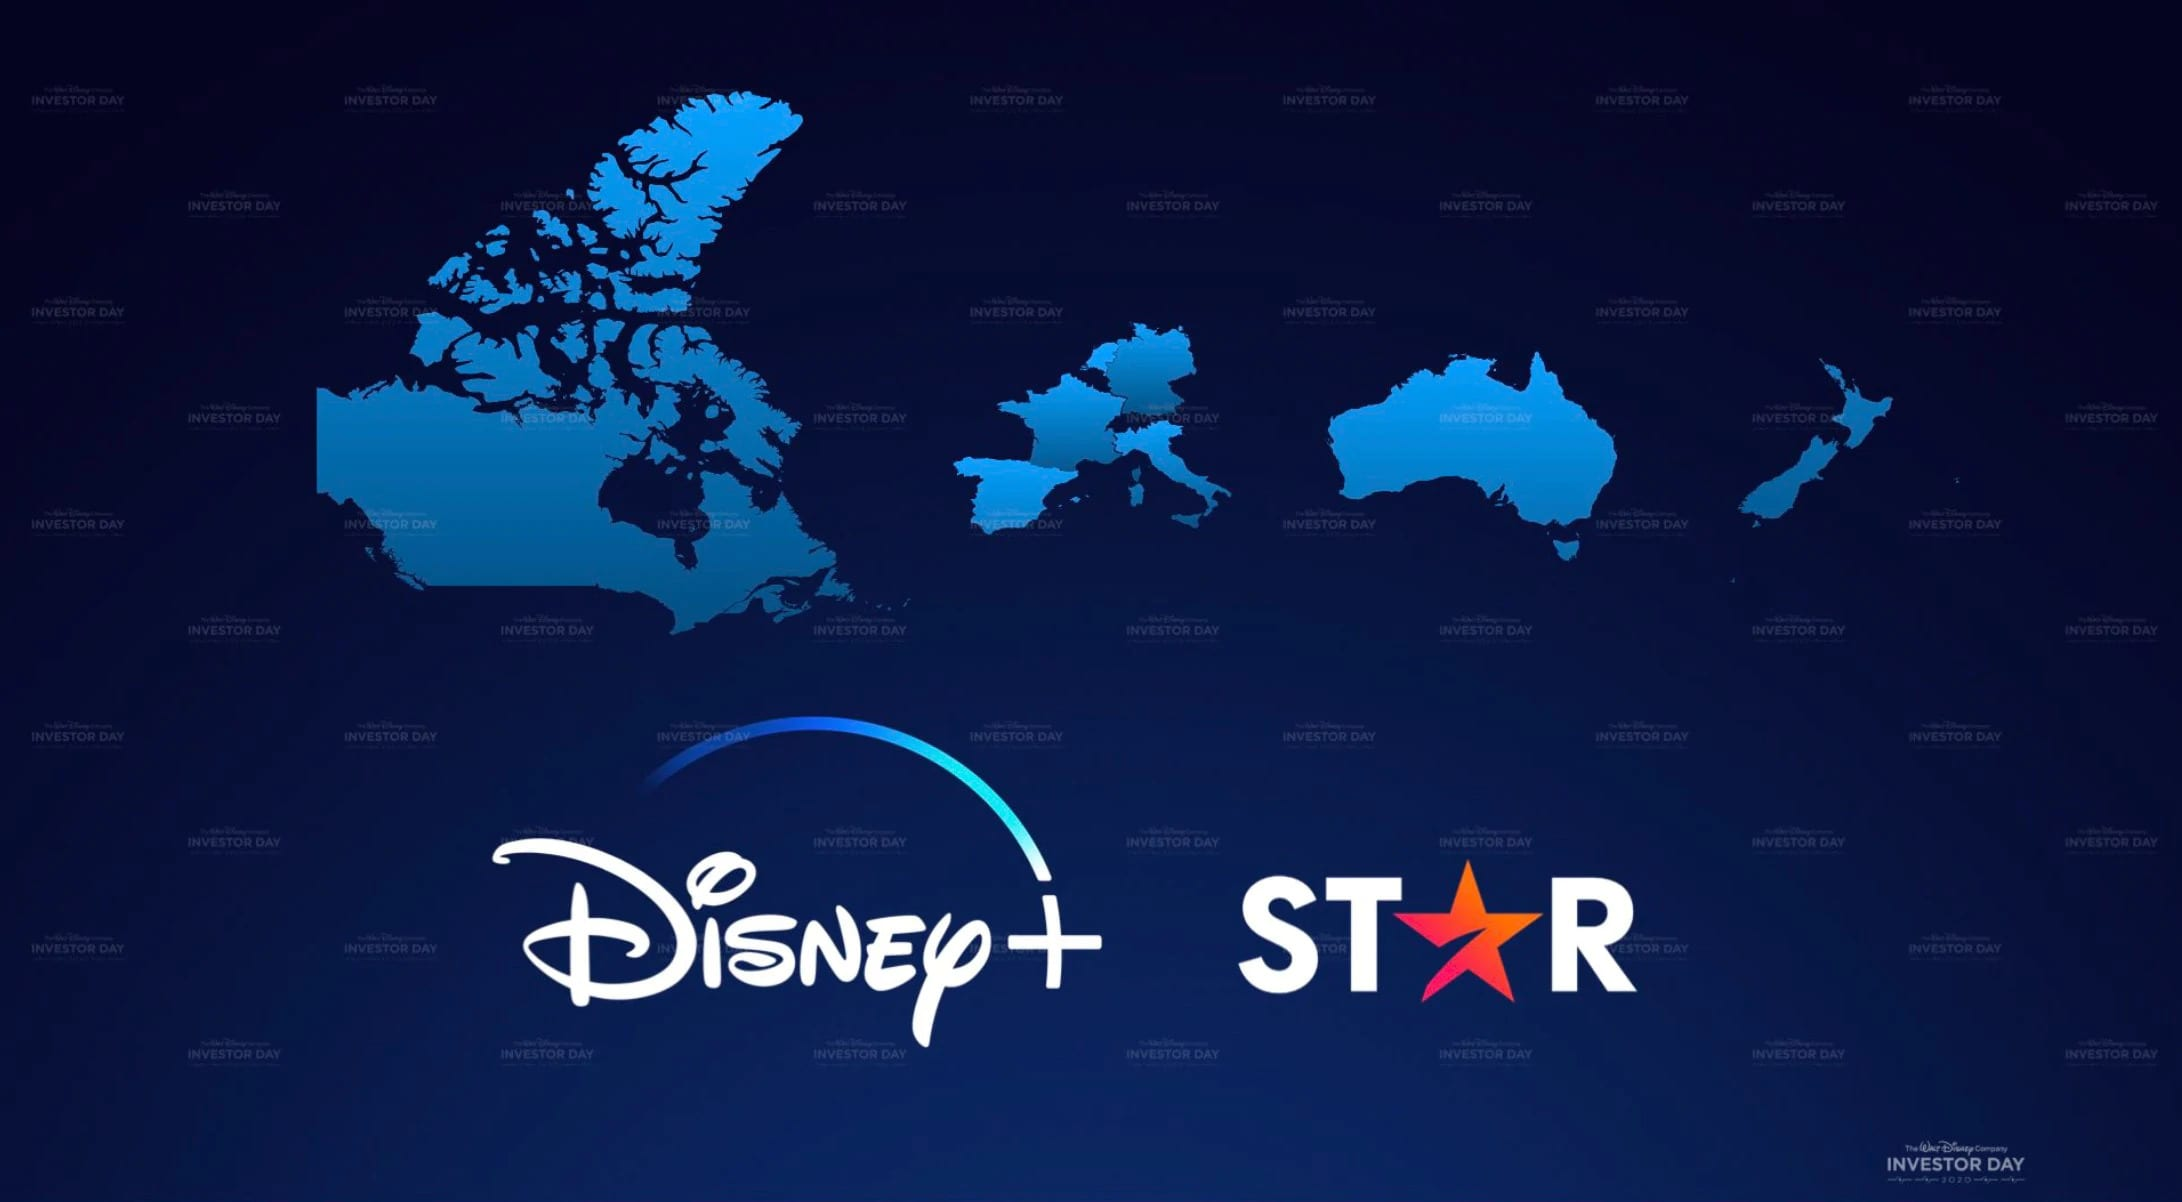 Disney+ Star Original